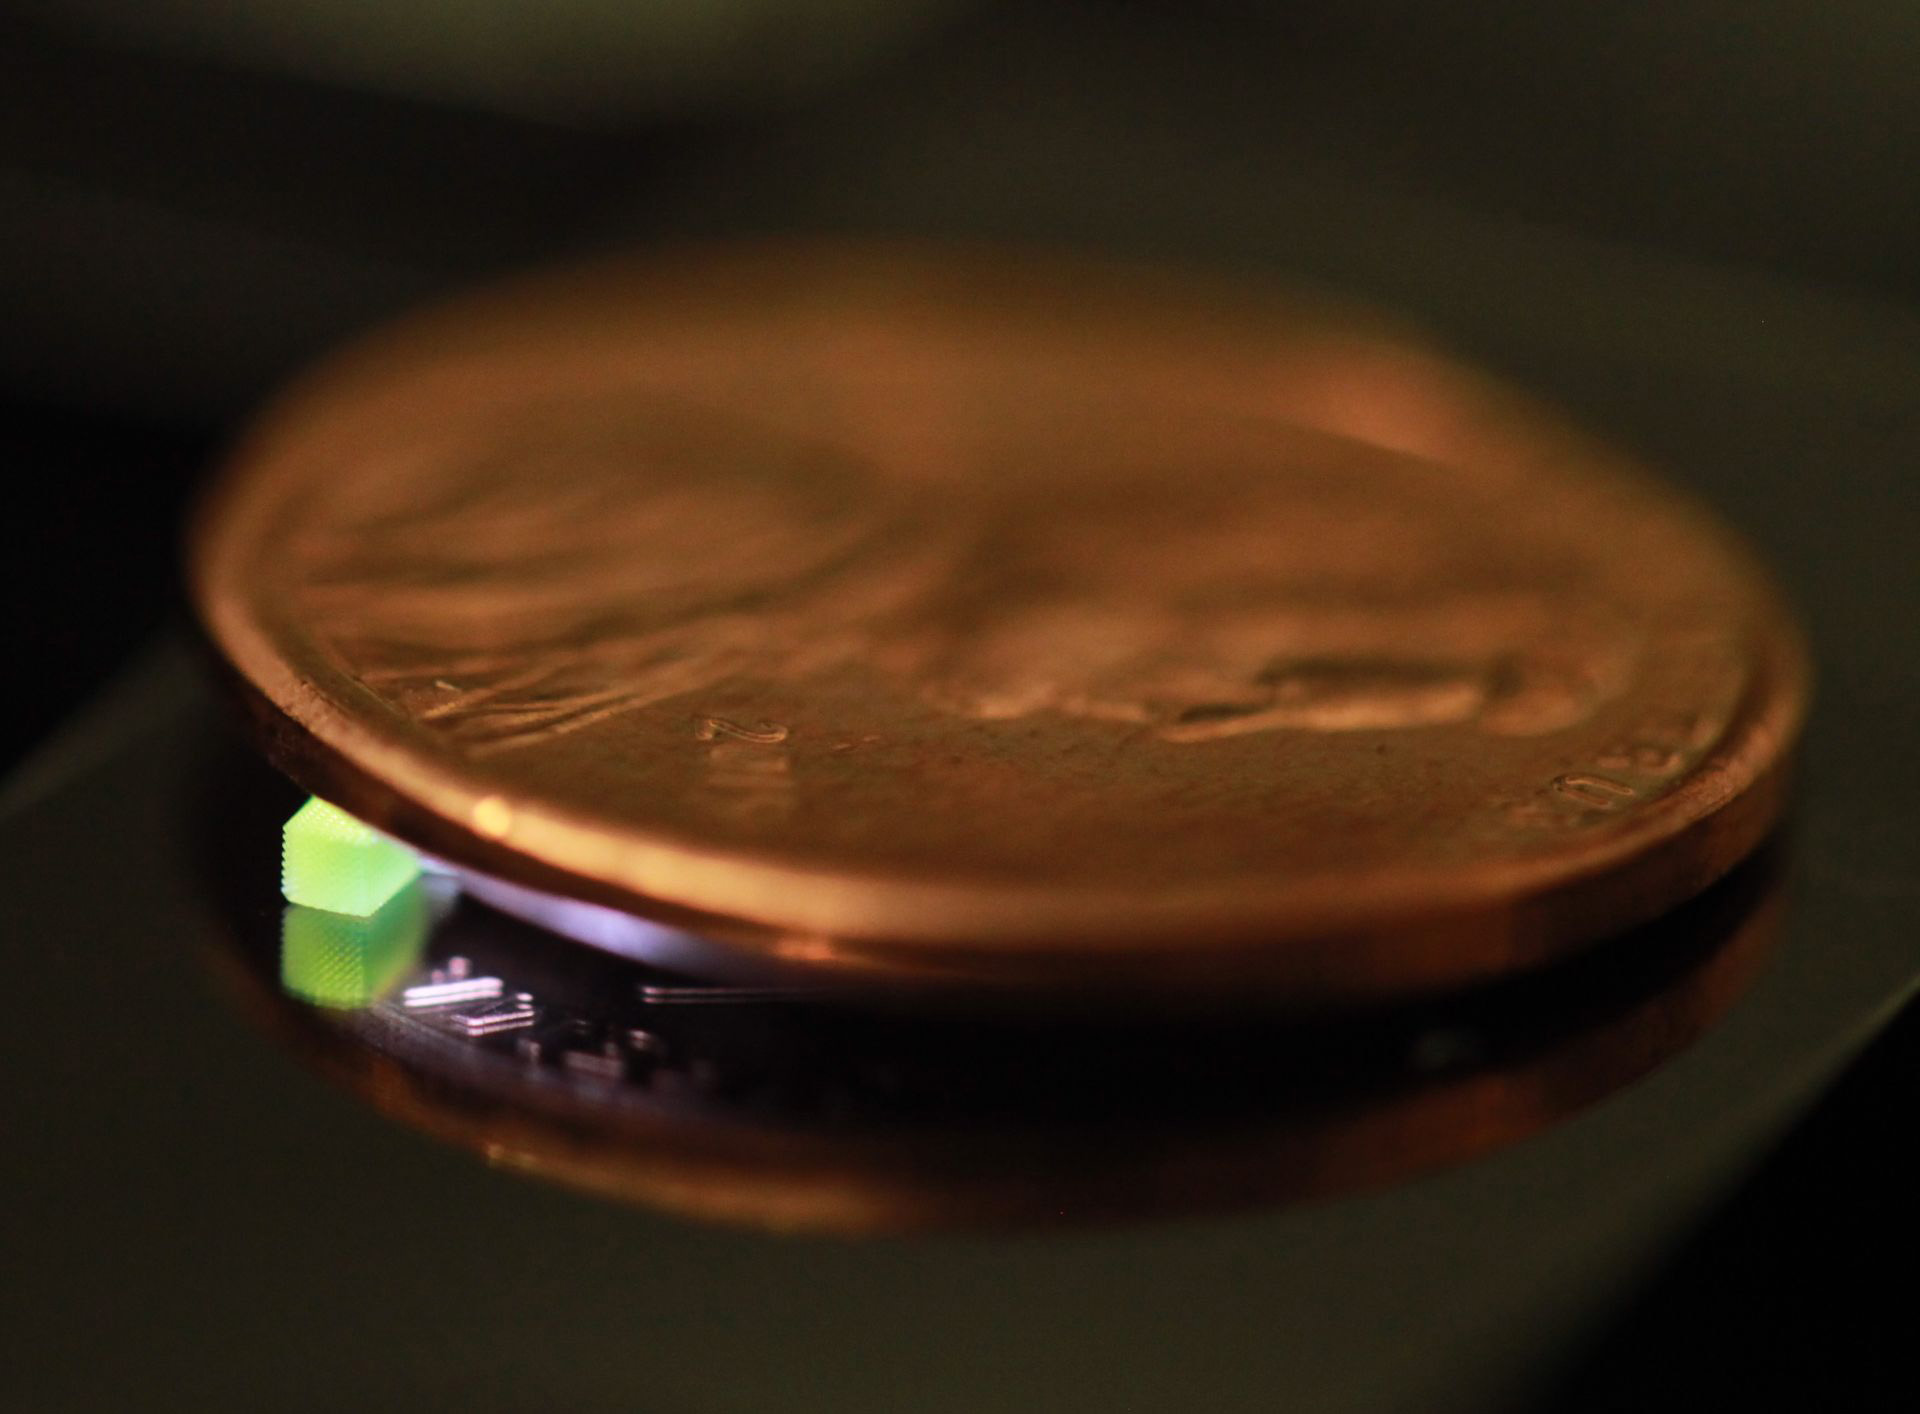 A millimeter-scale structure with submicron features is supported on a U.S. penny on top of a reflective surface. (Credit: Vu Nguyen and Sourabh Saha)